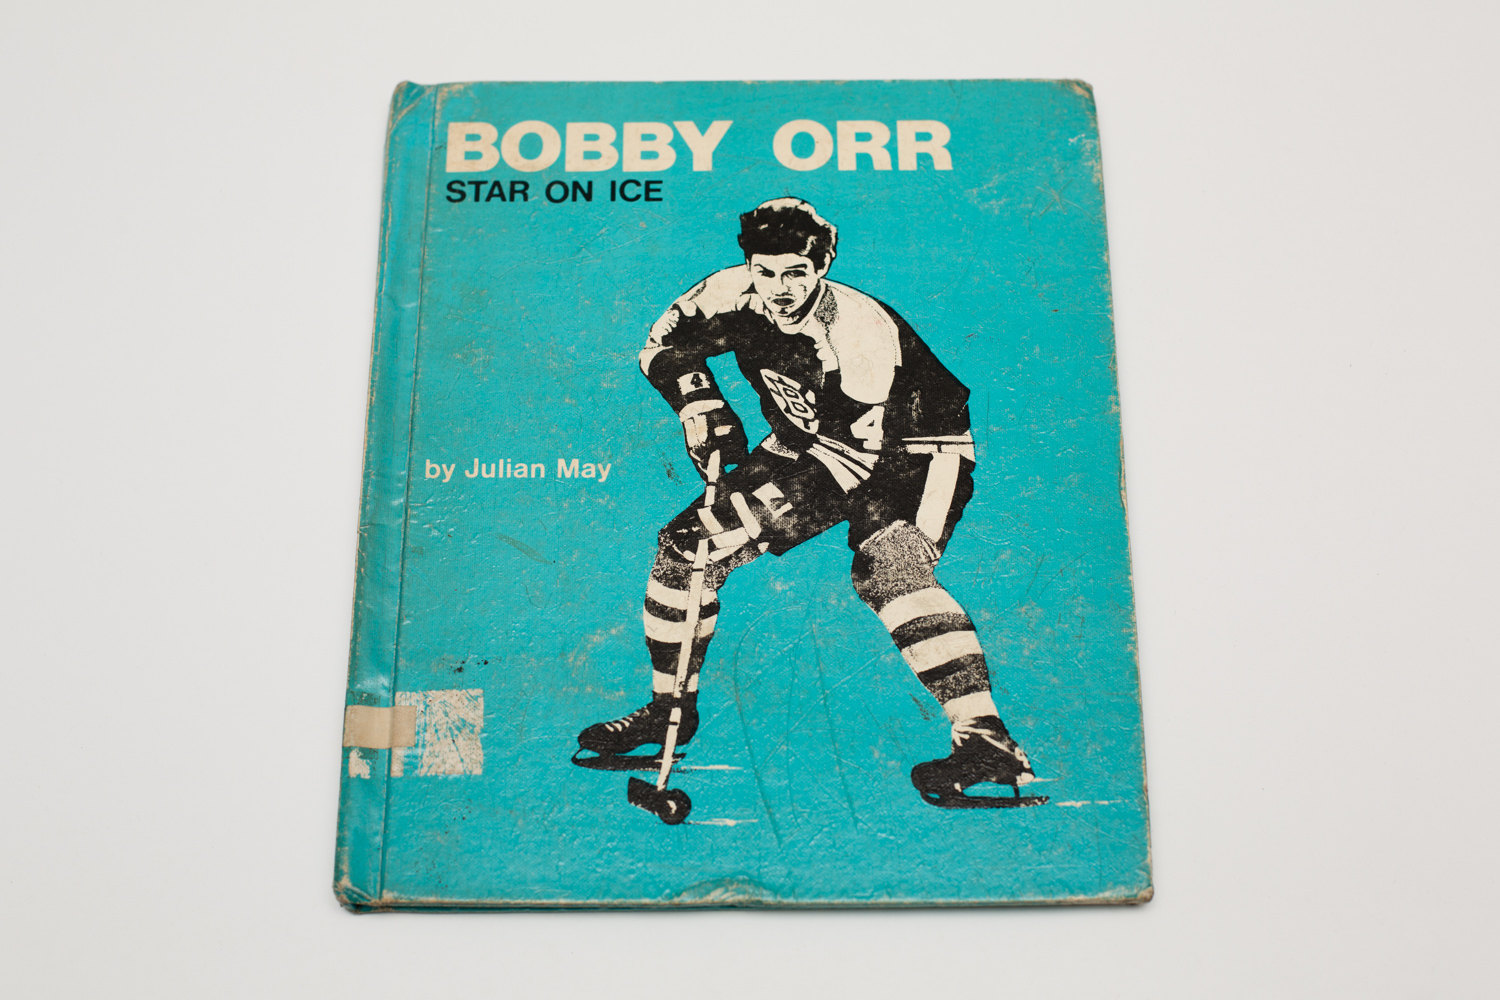 1973 Bobby Orr Biography Book